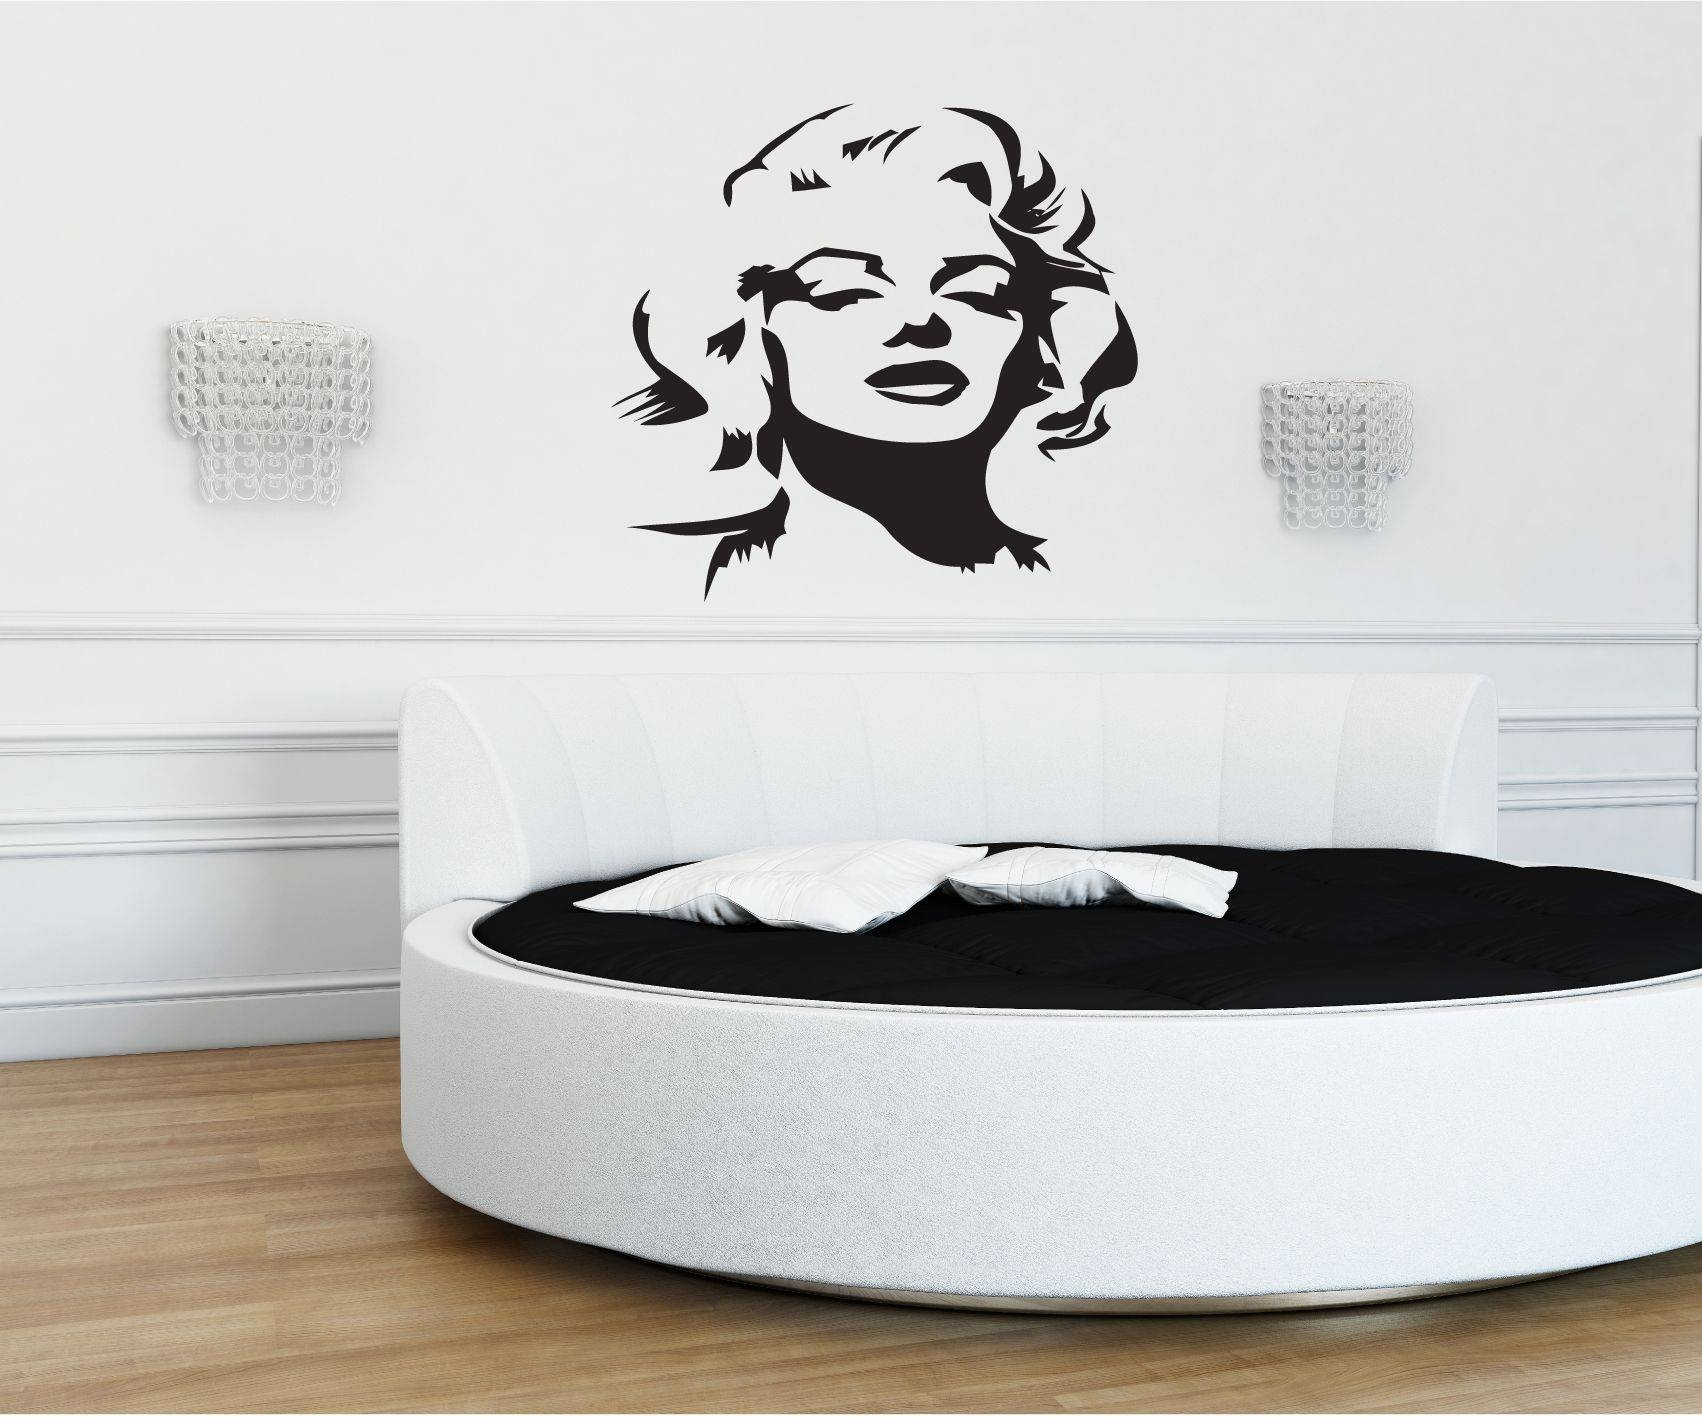 Marilyn Monroe Wall Decor Quotes : Marilyn Monroe Wall Decor Ideas Pertaining To Latest Marilyn Monroe Wall Art Quotes (View 15 of 25)